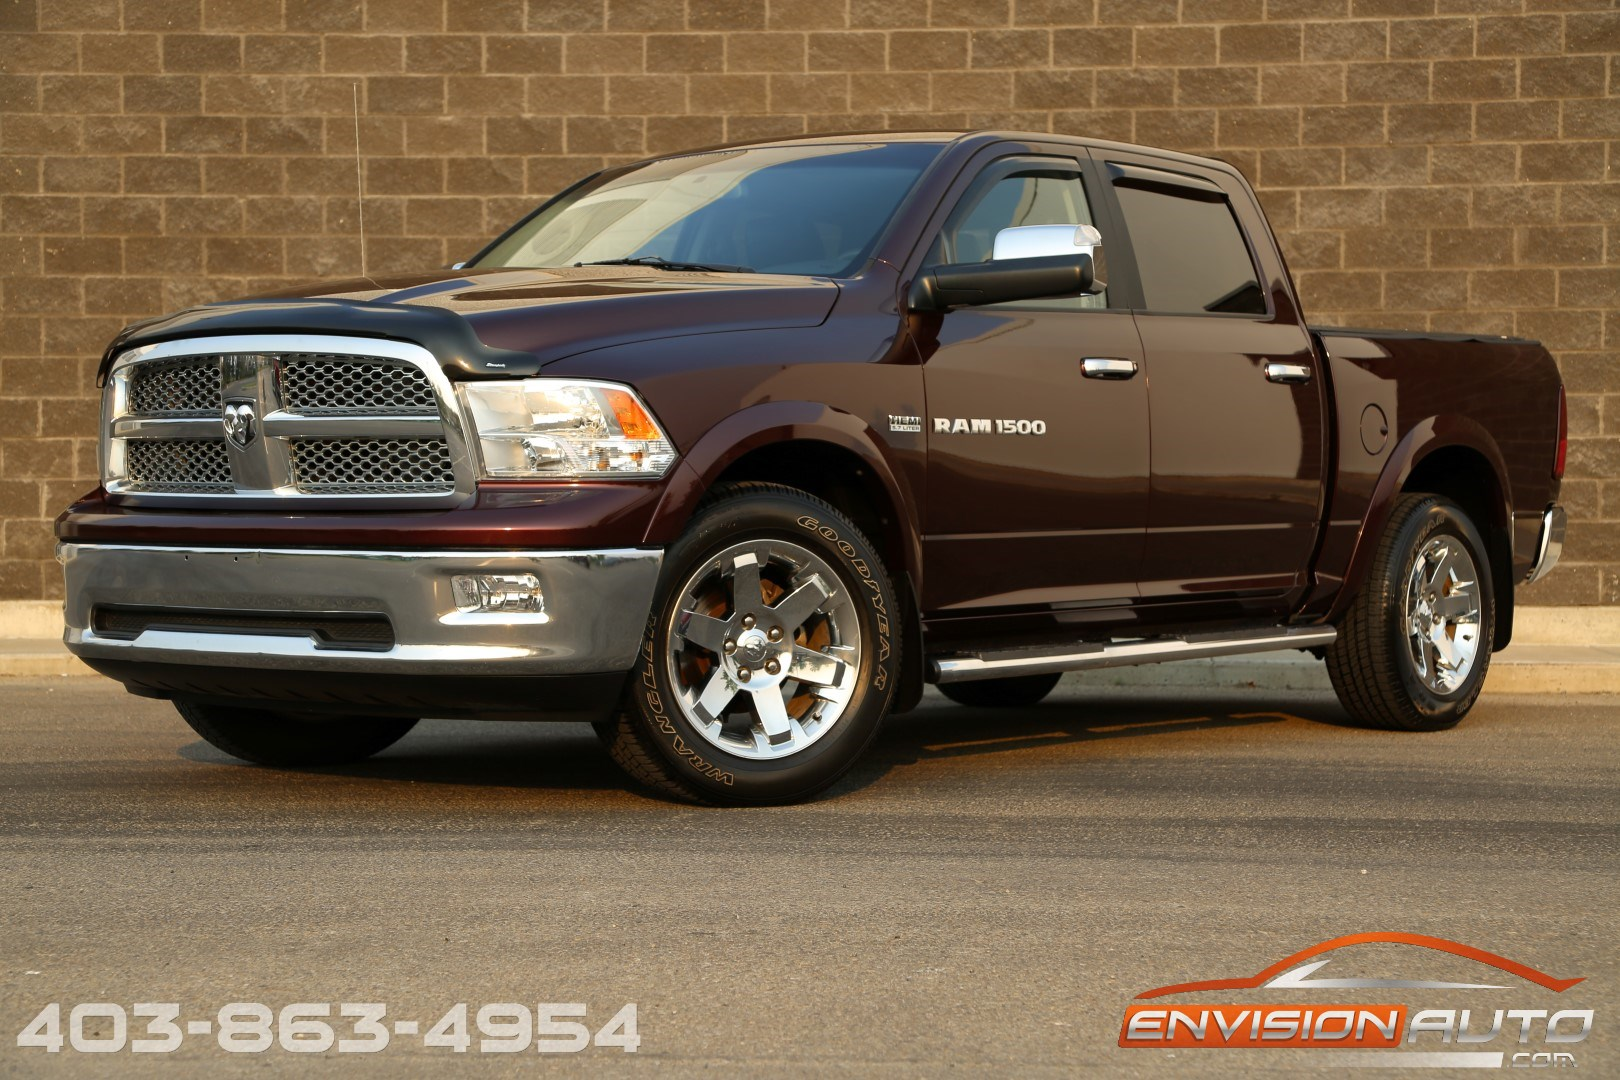 2012 dodge ram 1500 crew cab laramie 4 4 envision auto calgary highline luxury sports cars. Black Bedroom Furniture Sets. Home Design Ideas